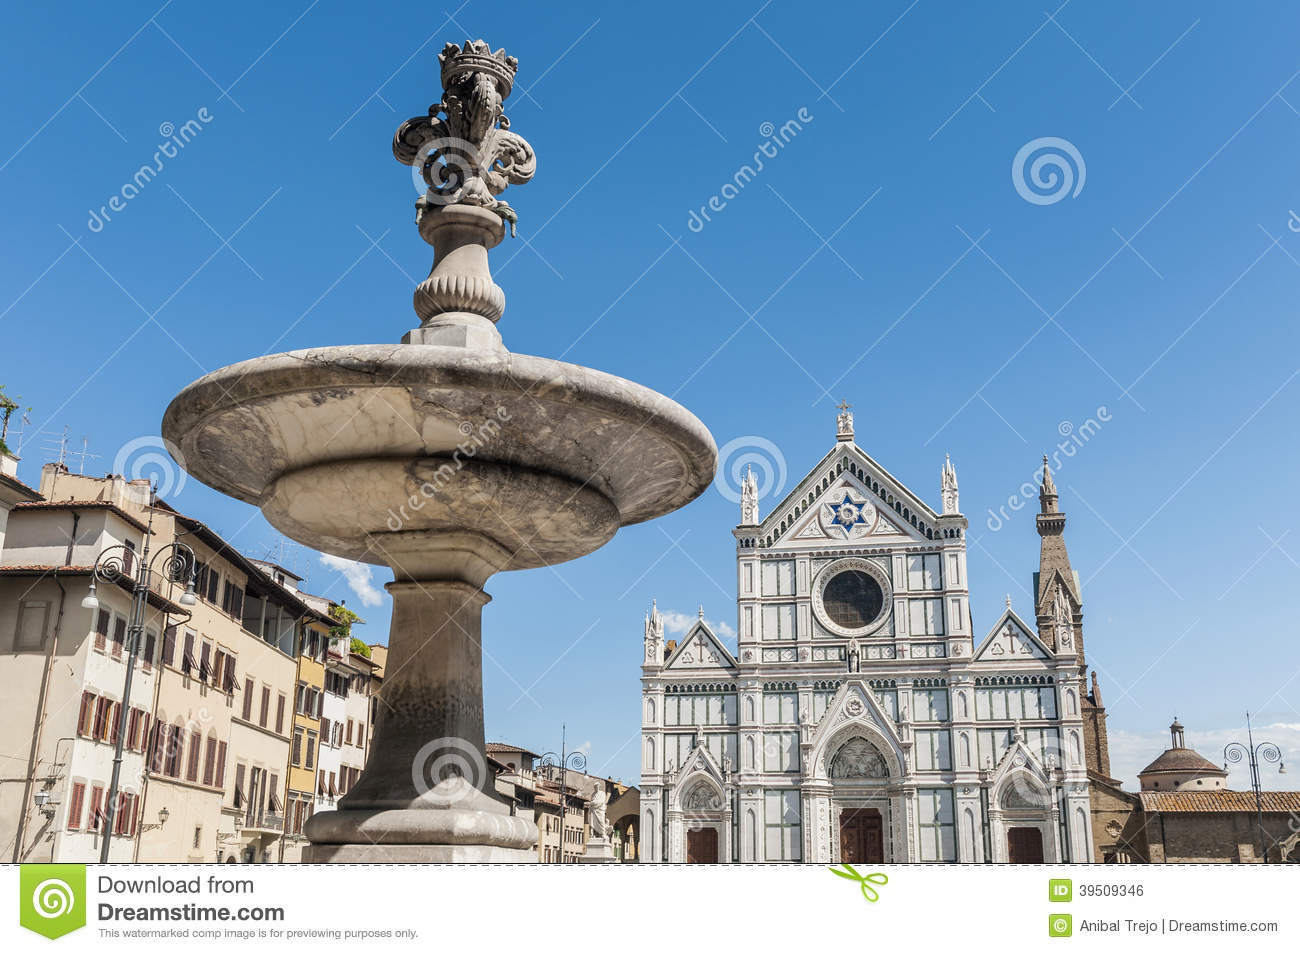 Piazza Santa Croce square in Florence, Italy